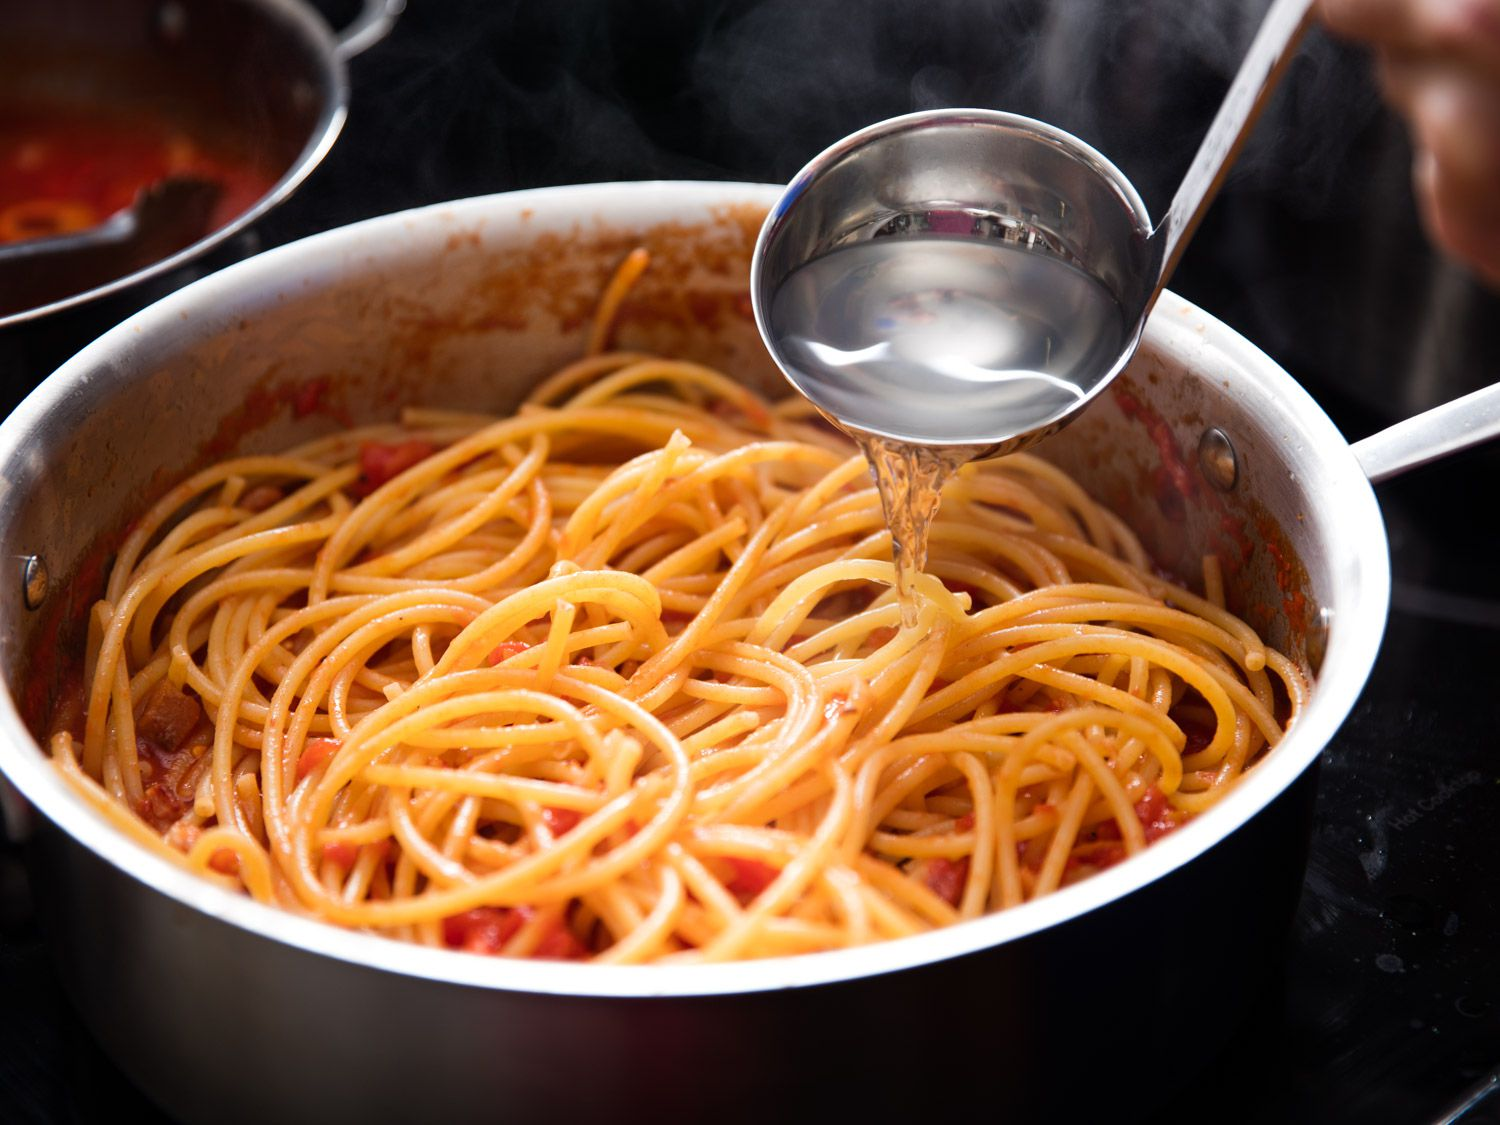 Does Adding Pasta Water Really Make a Difference